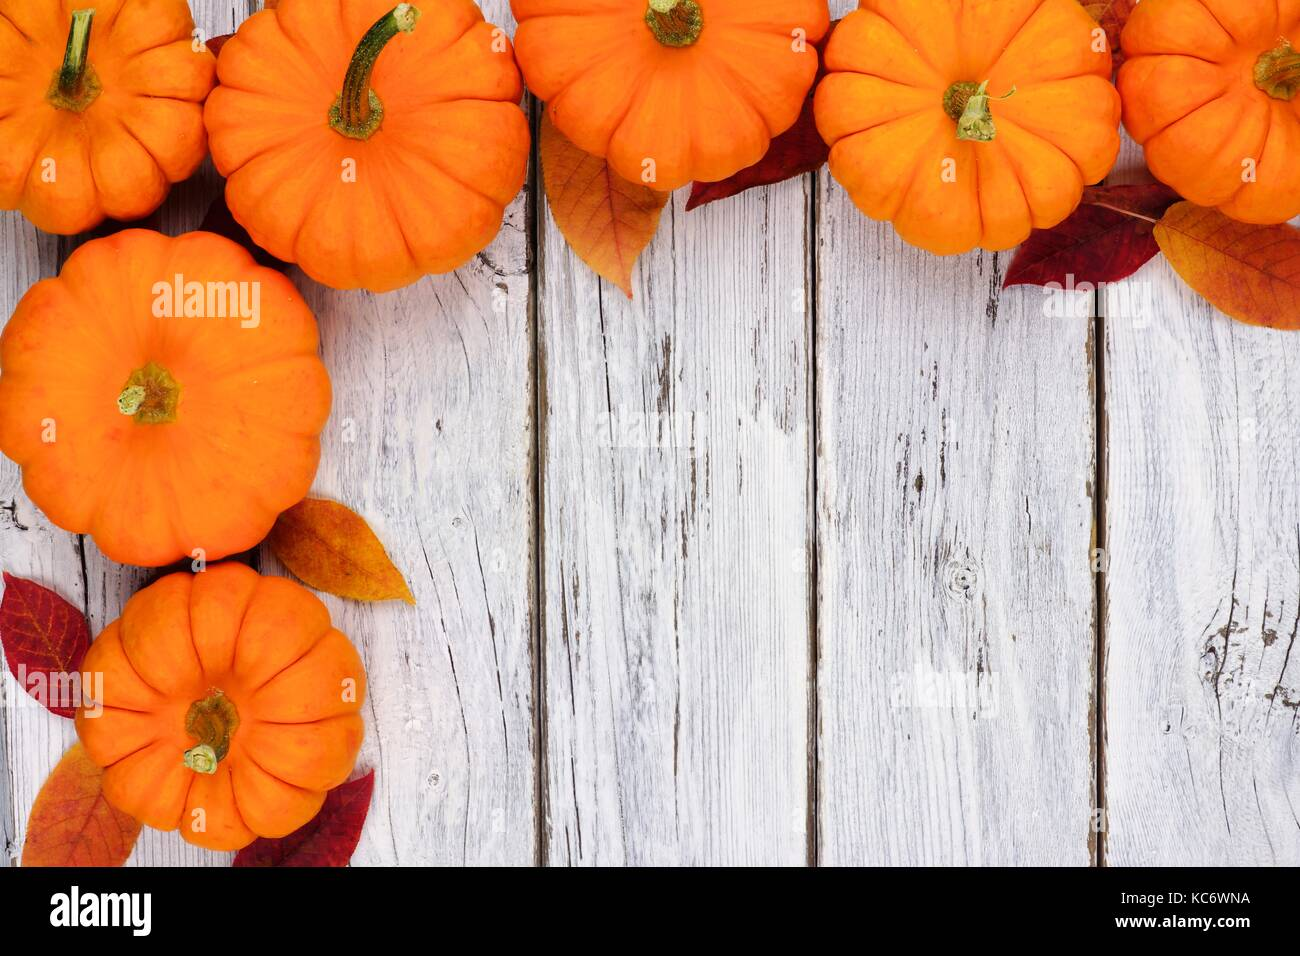 Autumn leaves and pumpkin corner border over a rustic white wood background - Stock Image